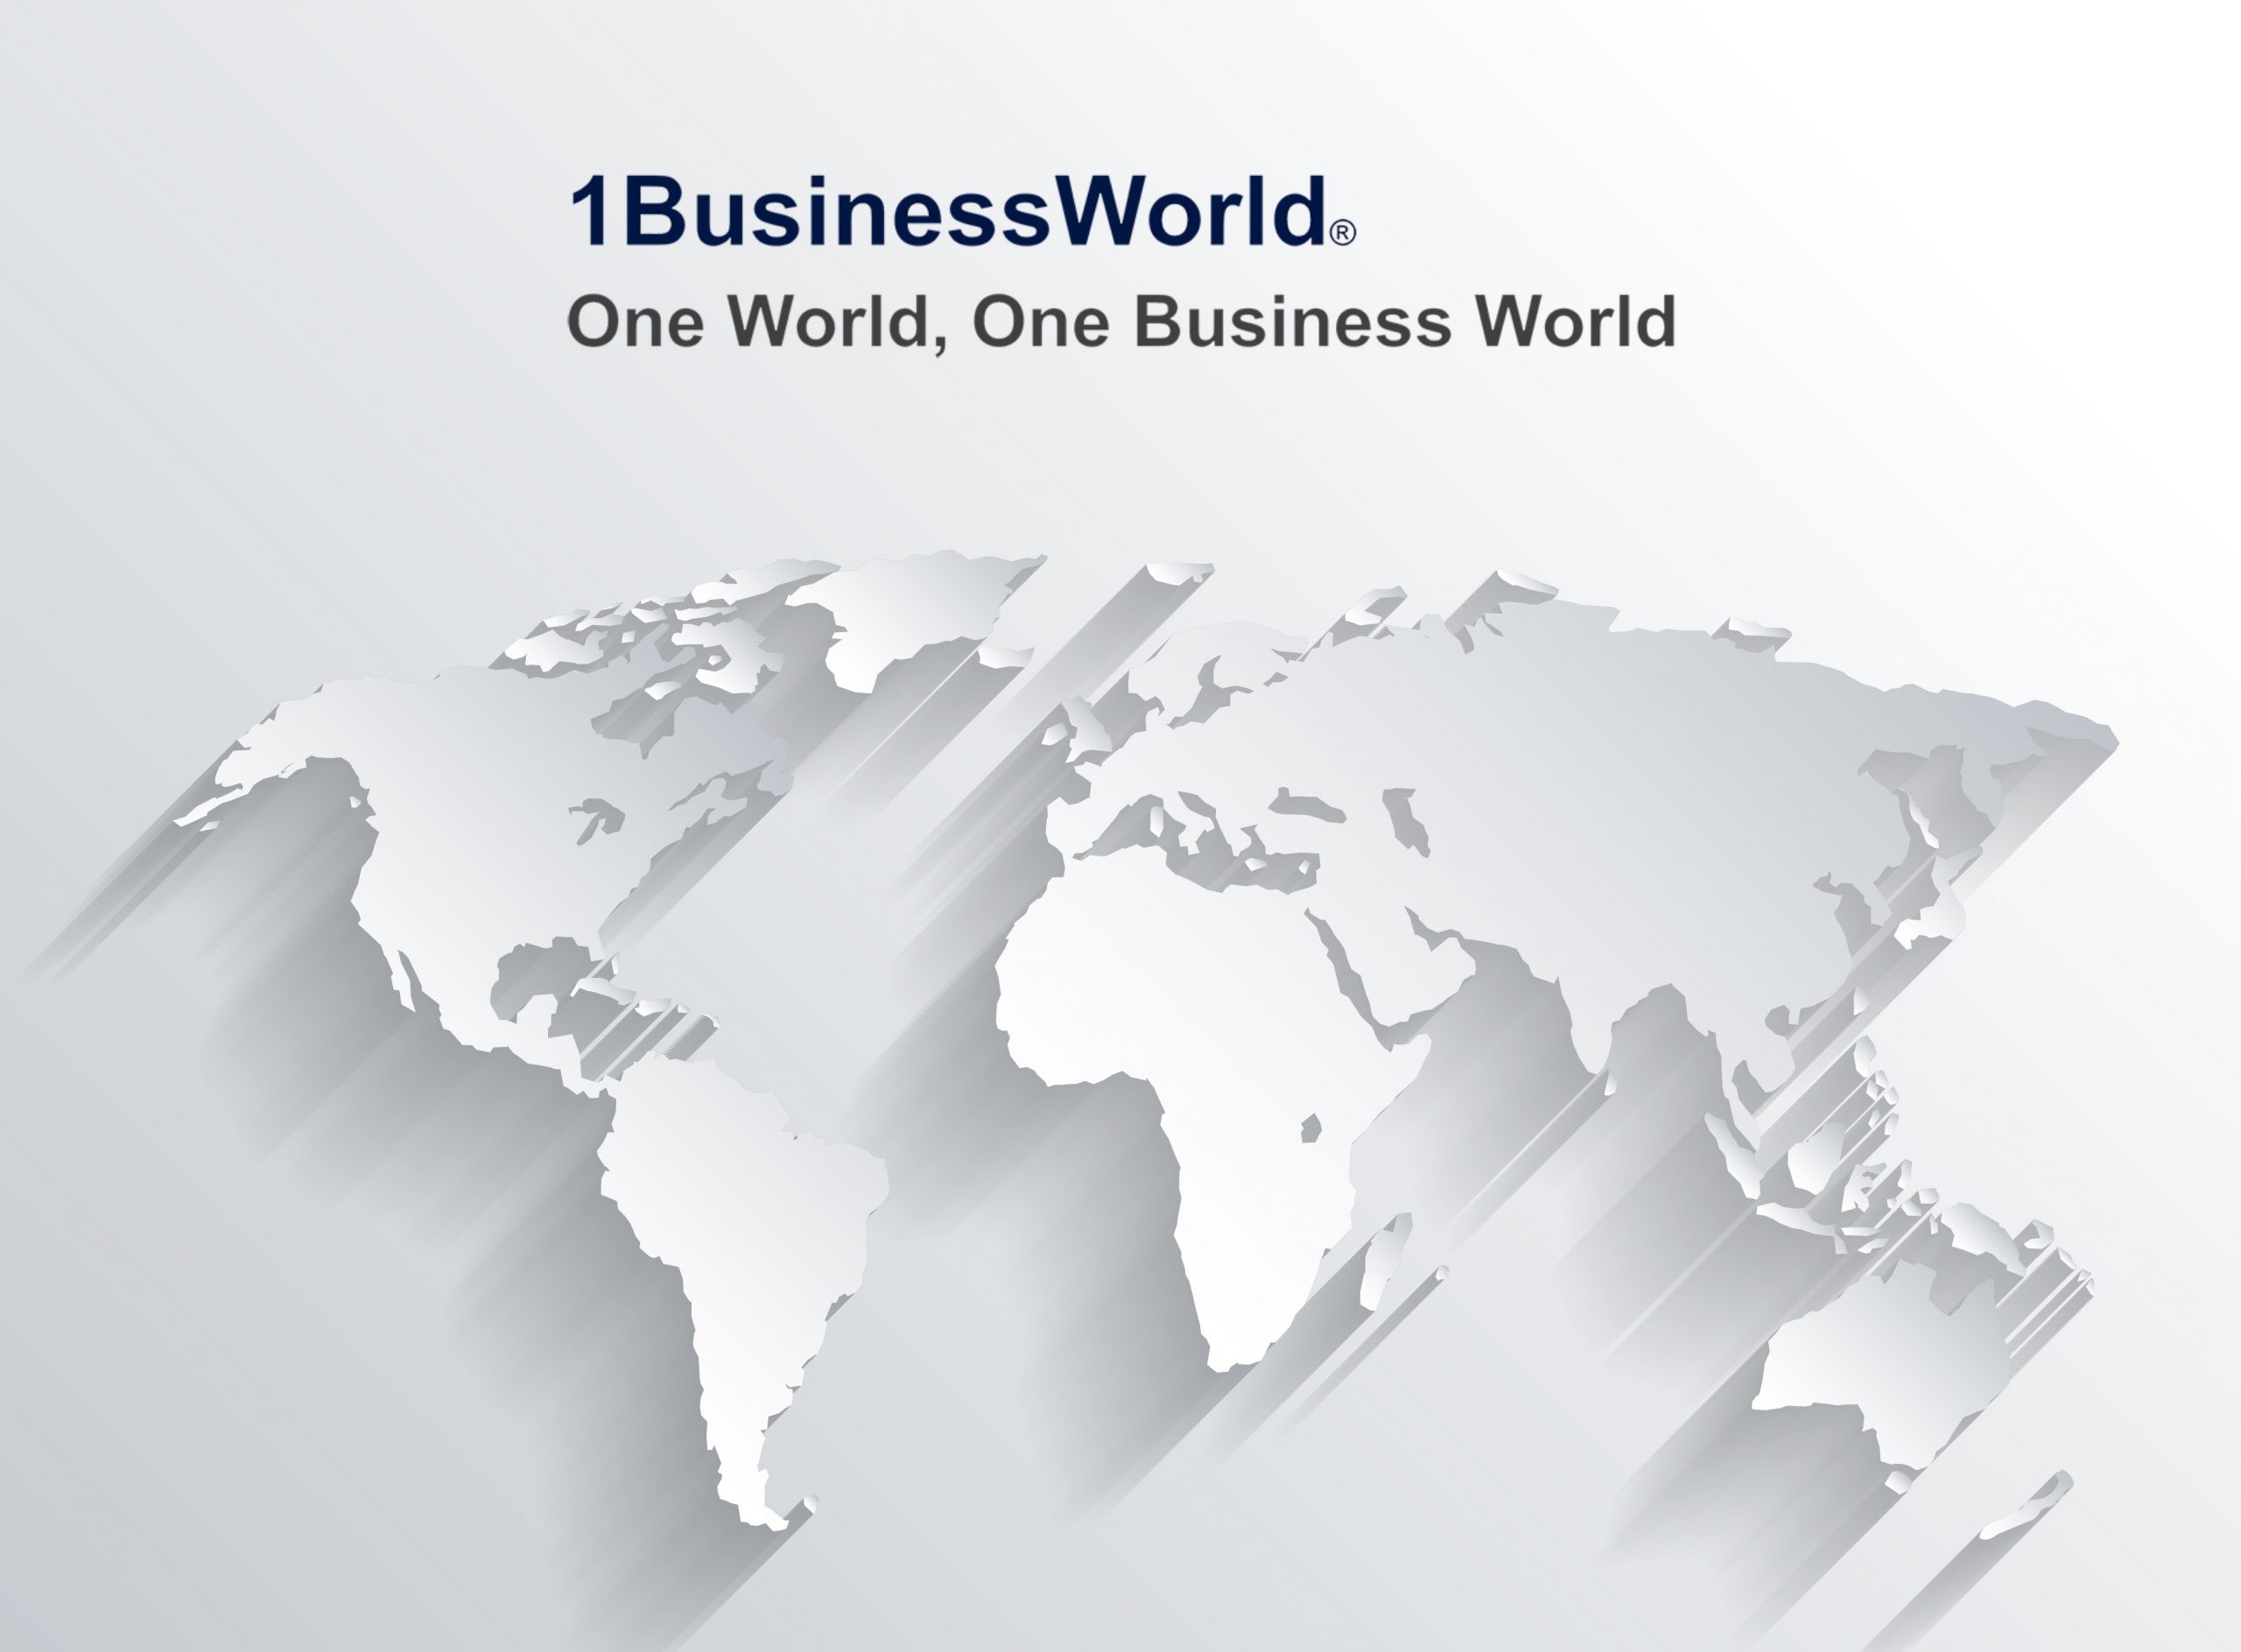 1BusinessWorld World Map